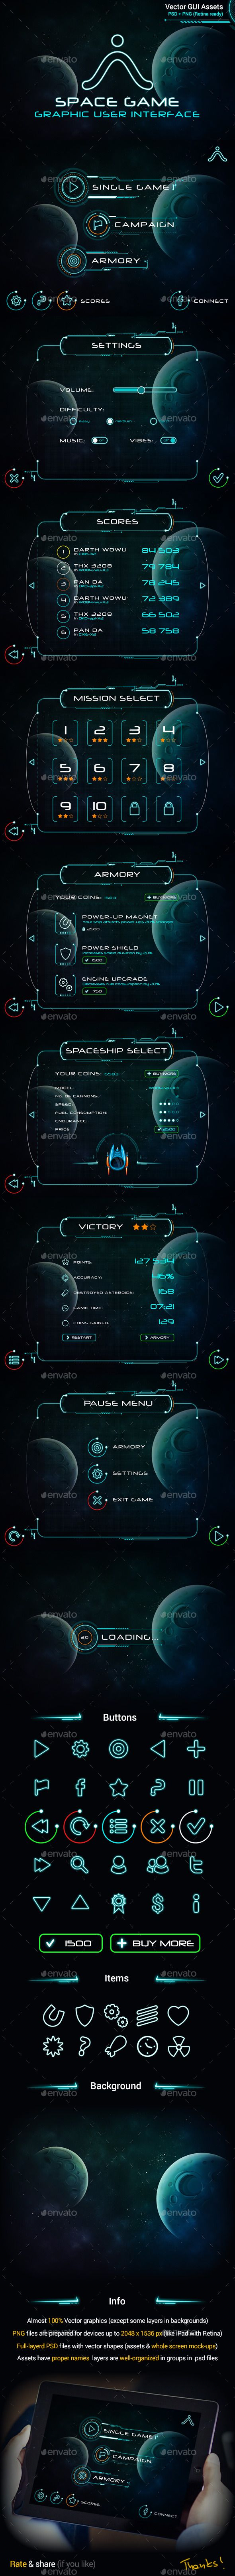 Space Game GUI Set - User Interfaces Game Assets                                                                                                                                                                                 More